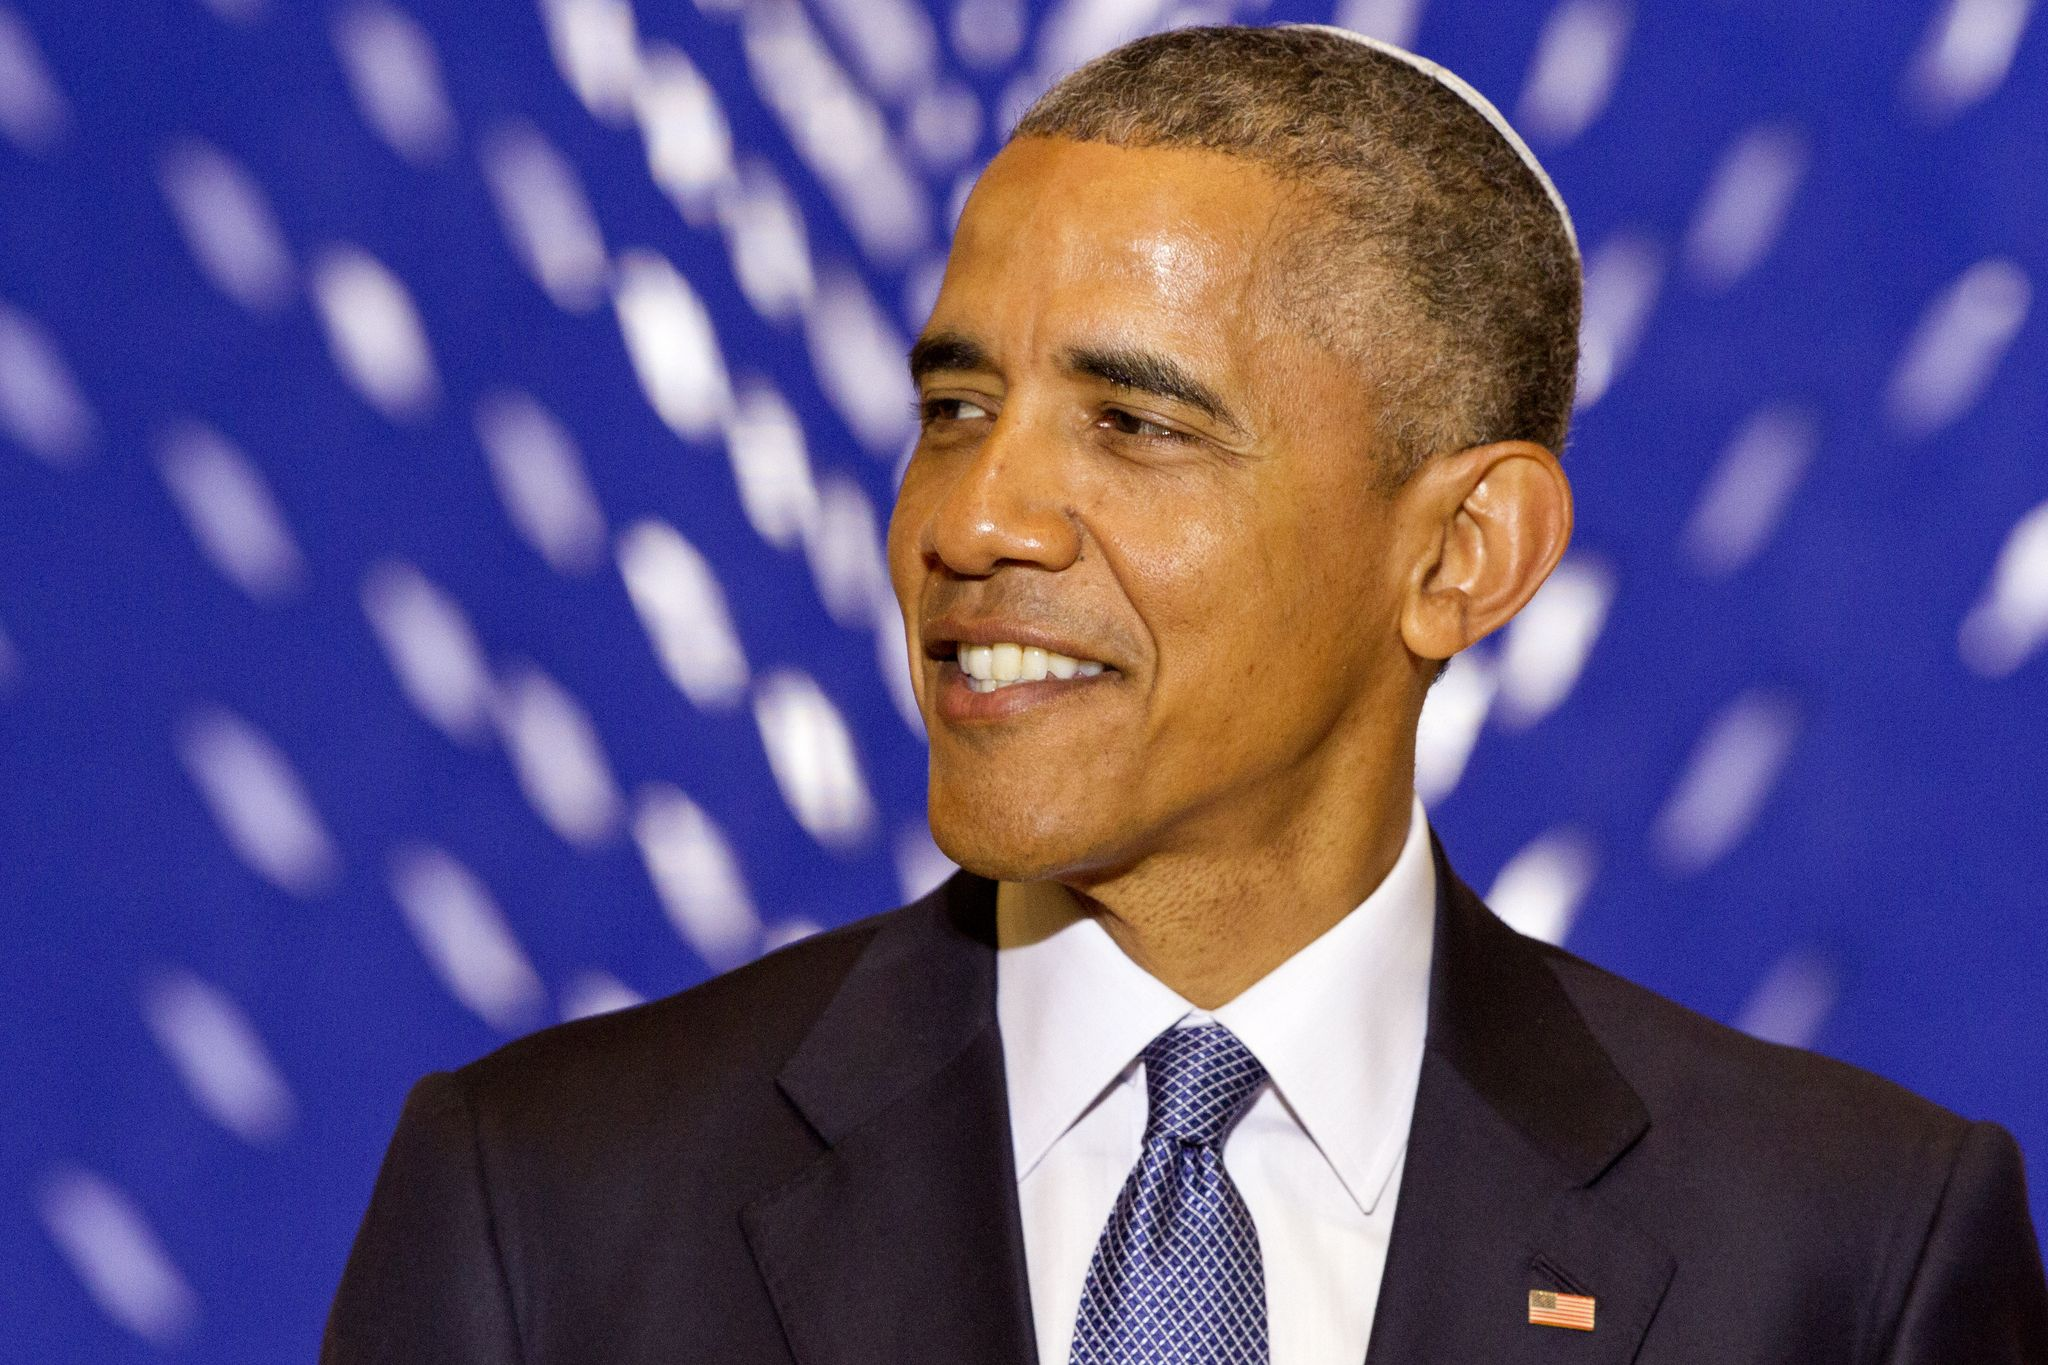 Obama's prestige rests with wary House after big win from Senate on trade authority